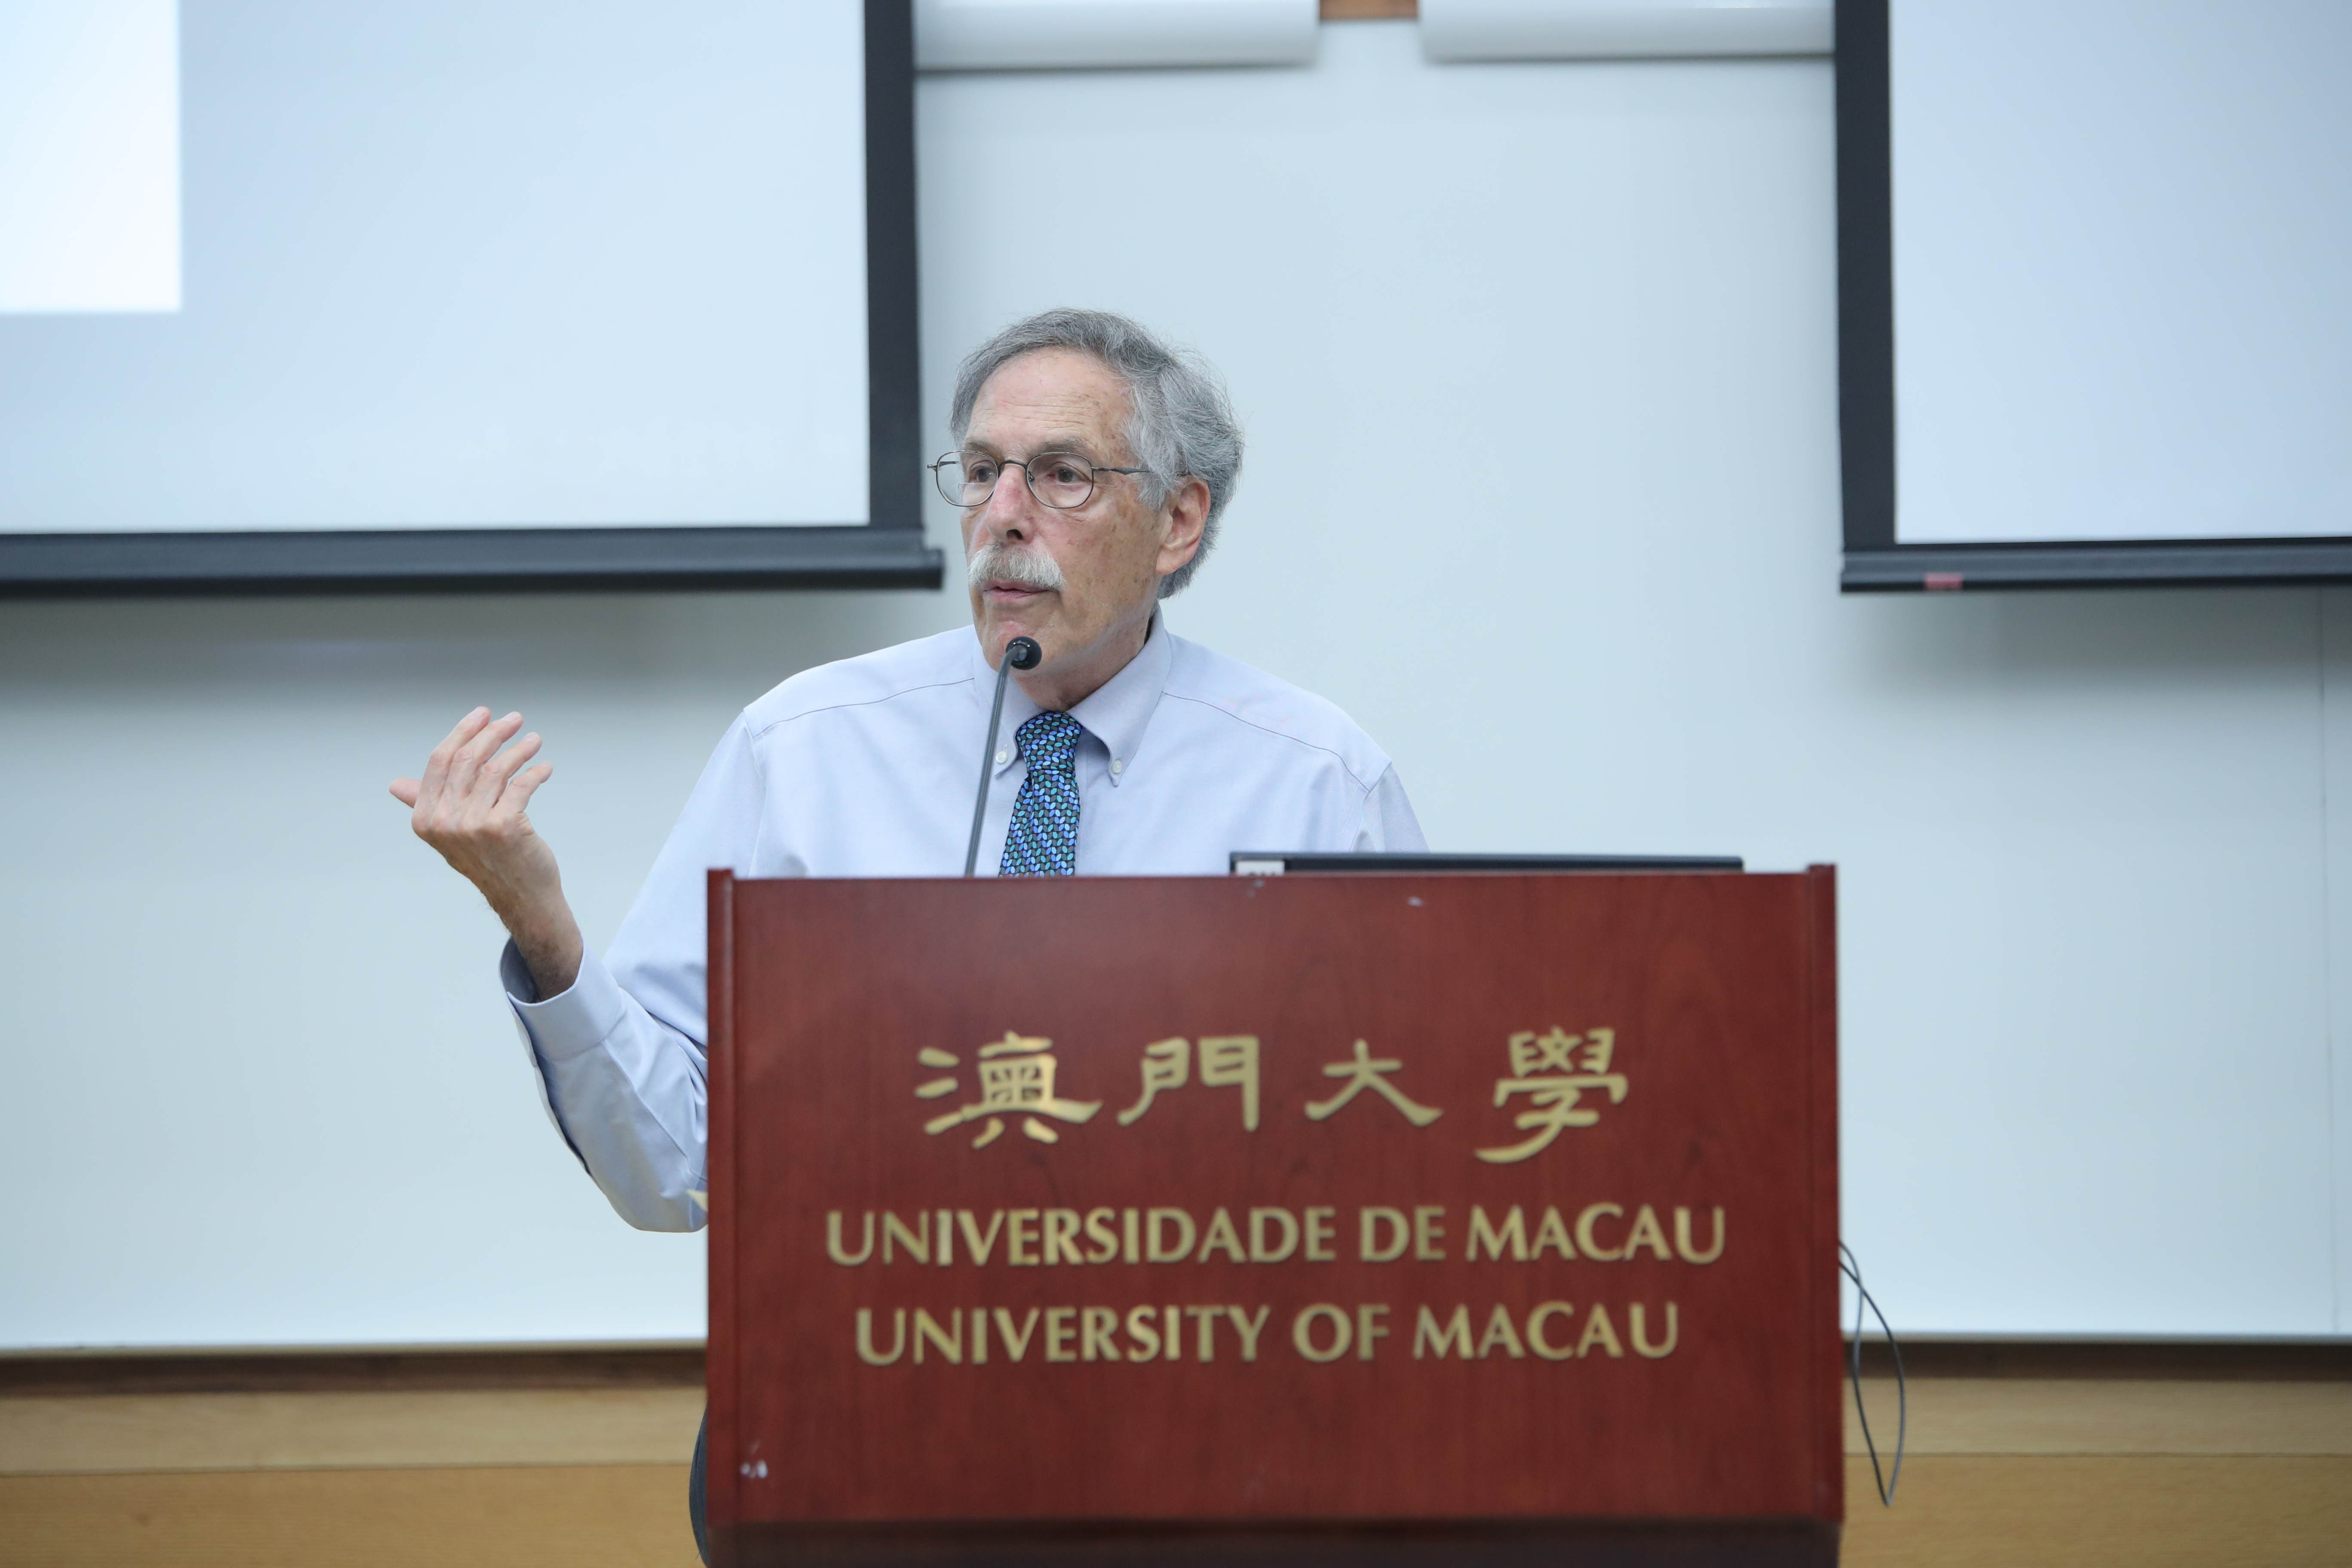 The Nobel laureate Peter A Diamond gives a talk at UM